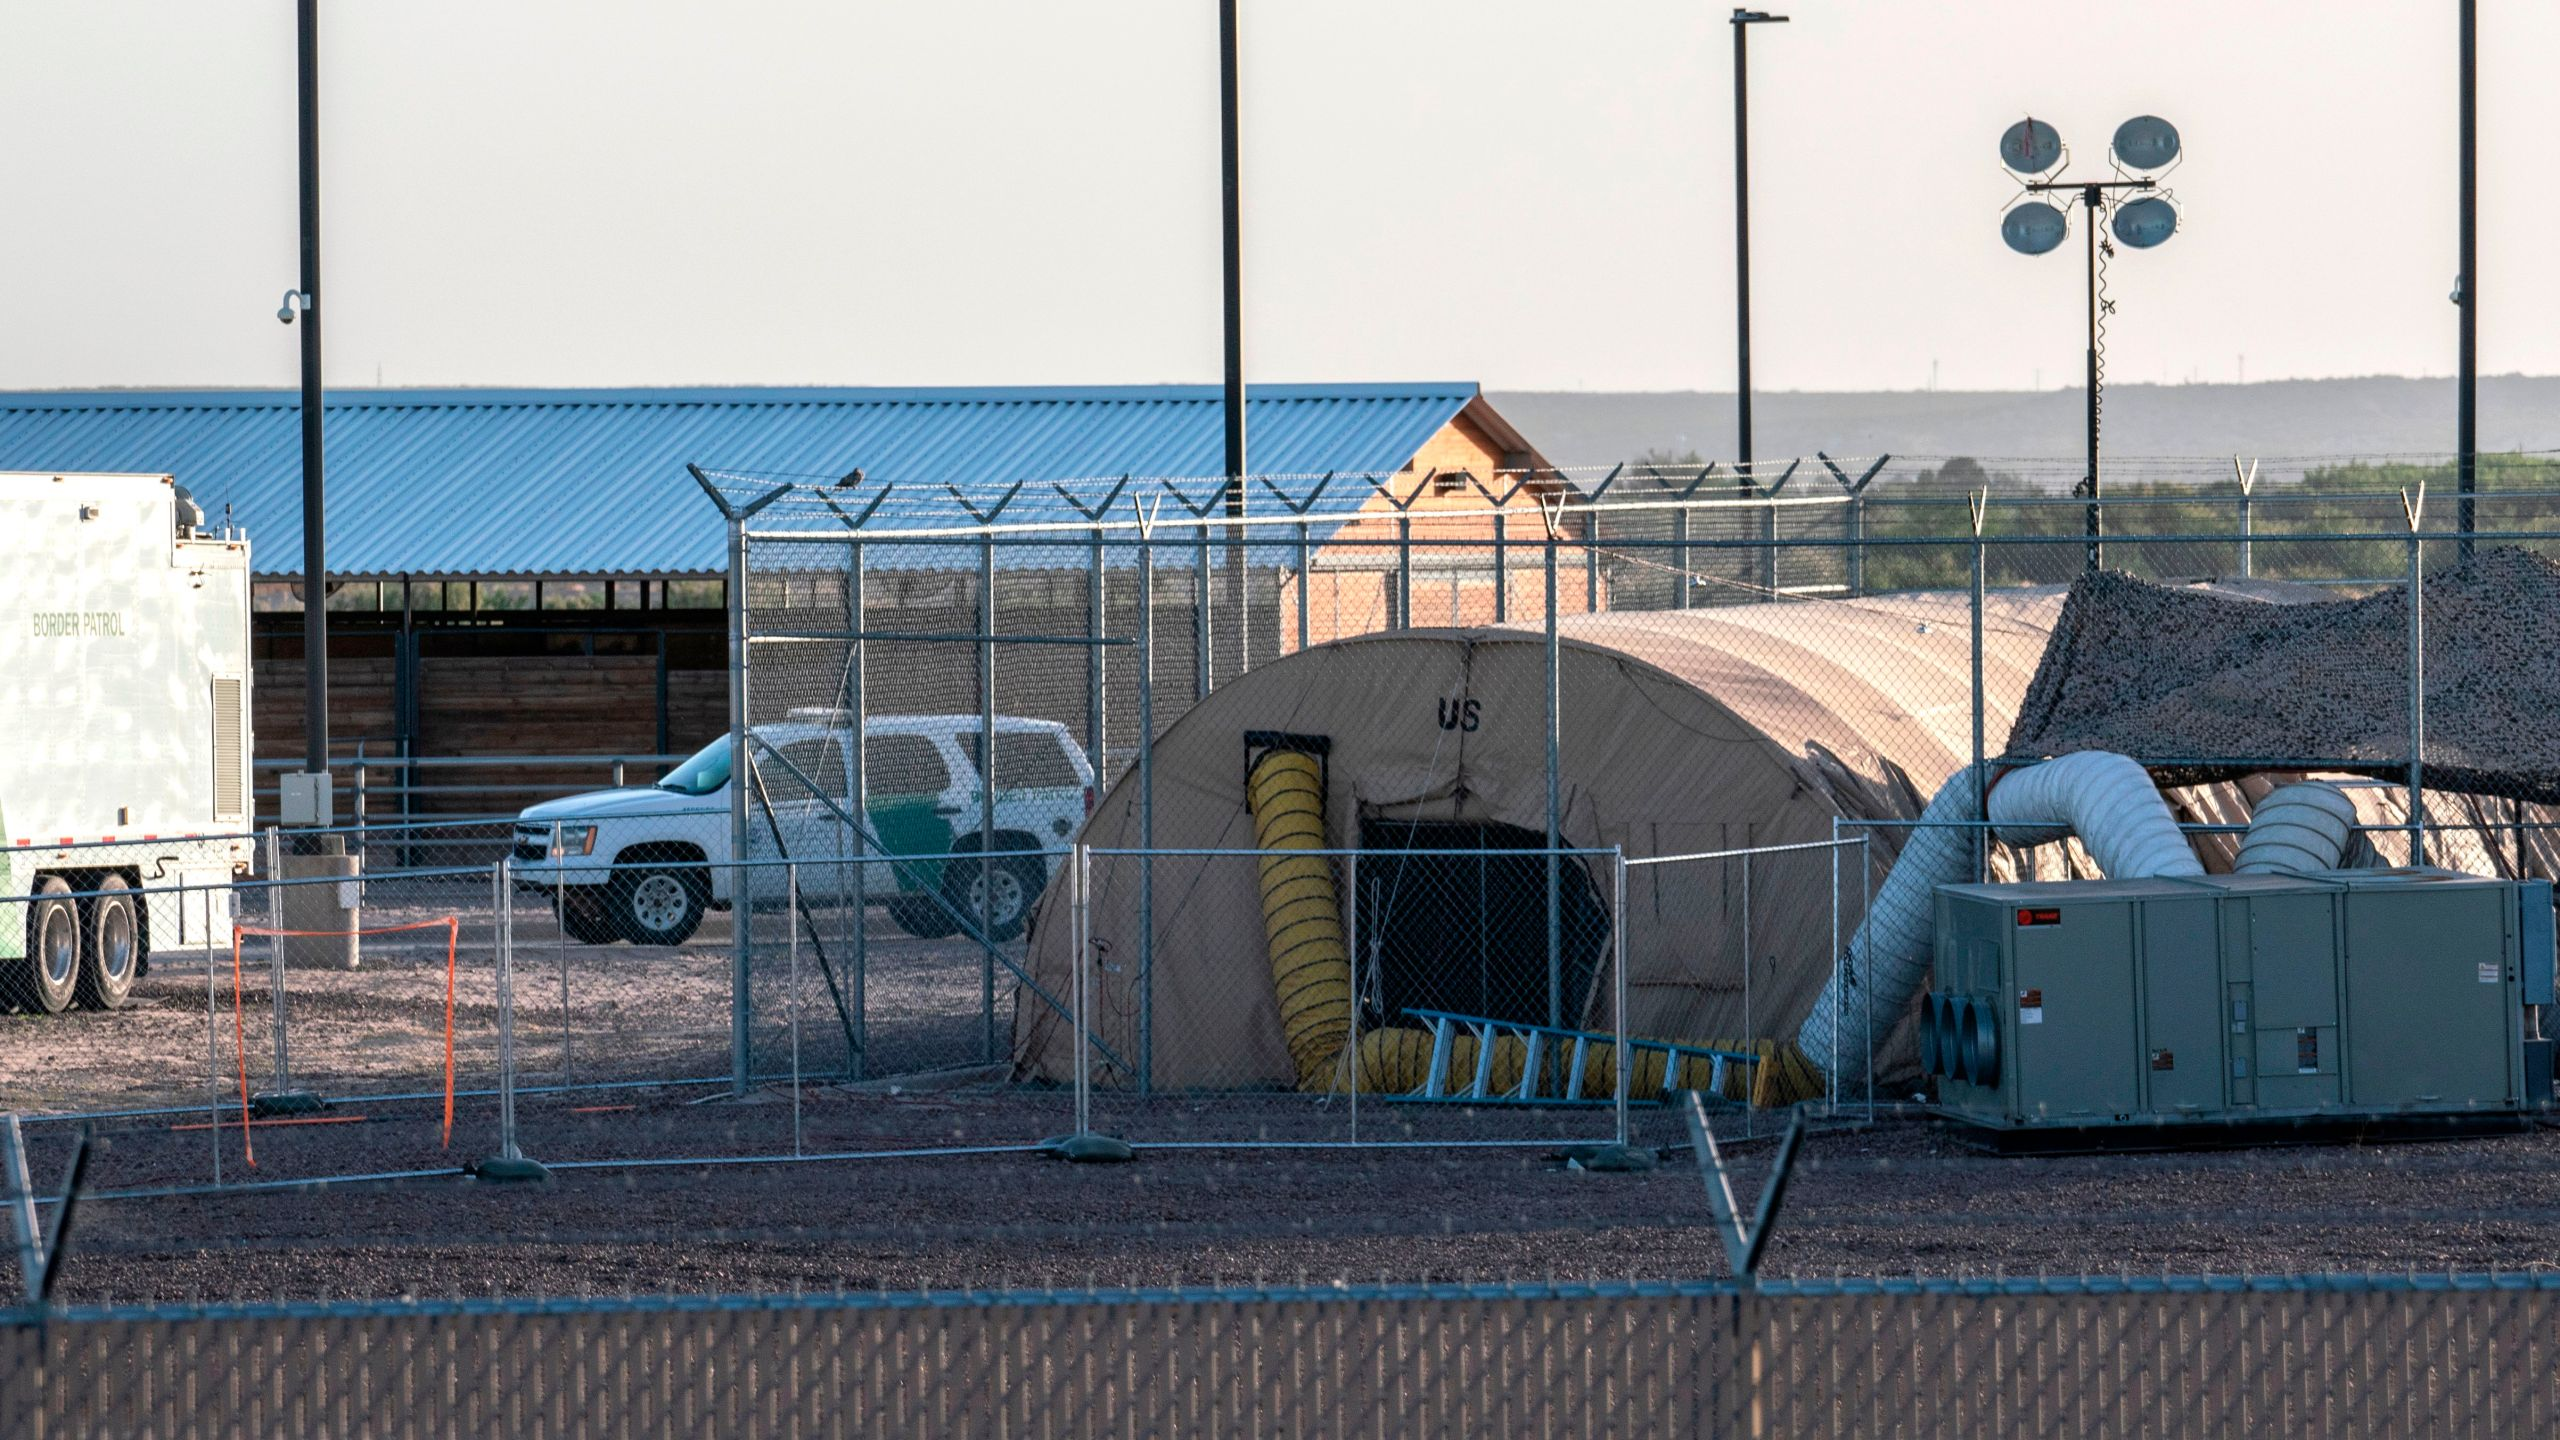 A temporary facility set up to hold immigrants is pictured at a U.S. Border Patrol Station in Clint, Texas, on June 21, 2019. (Credit: PAUL RATJE/AFP/Getty Images)